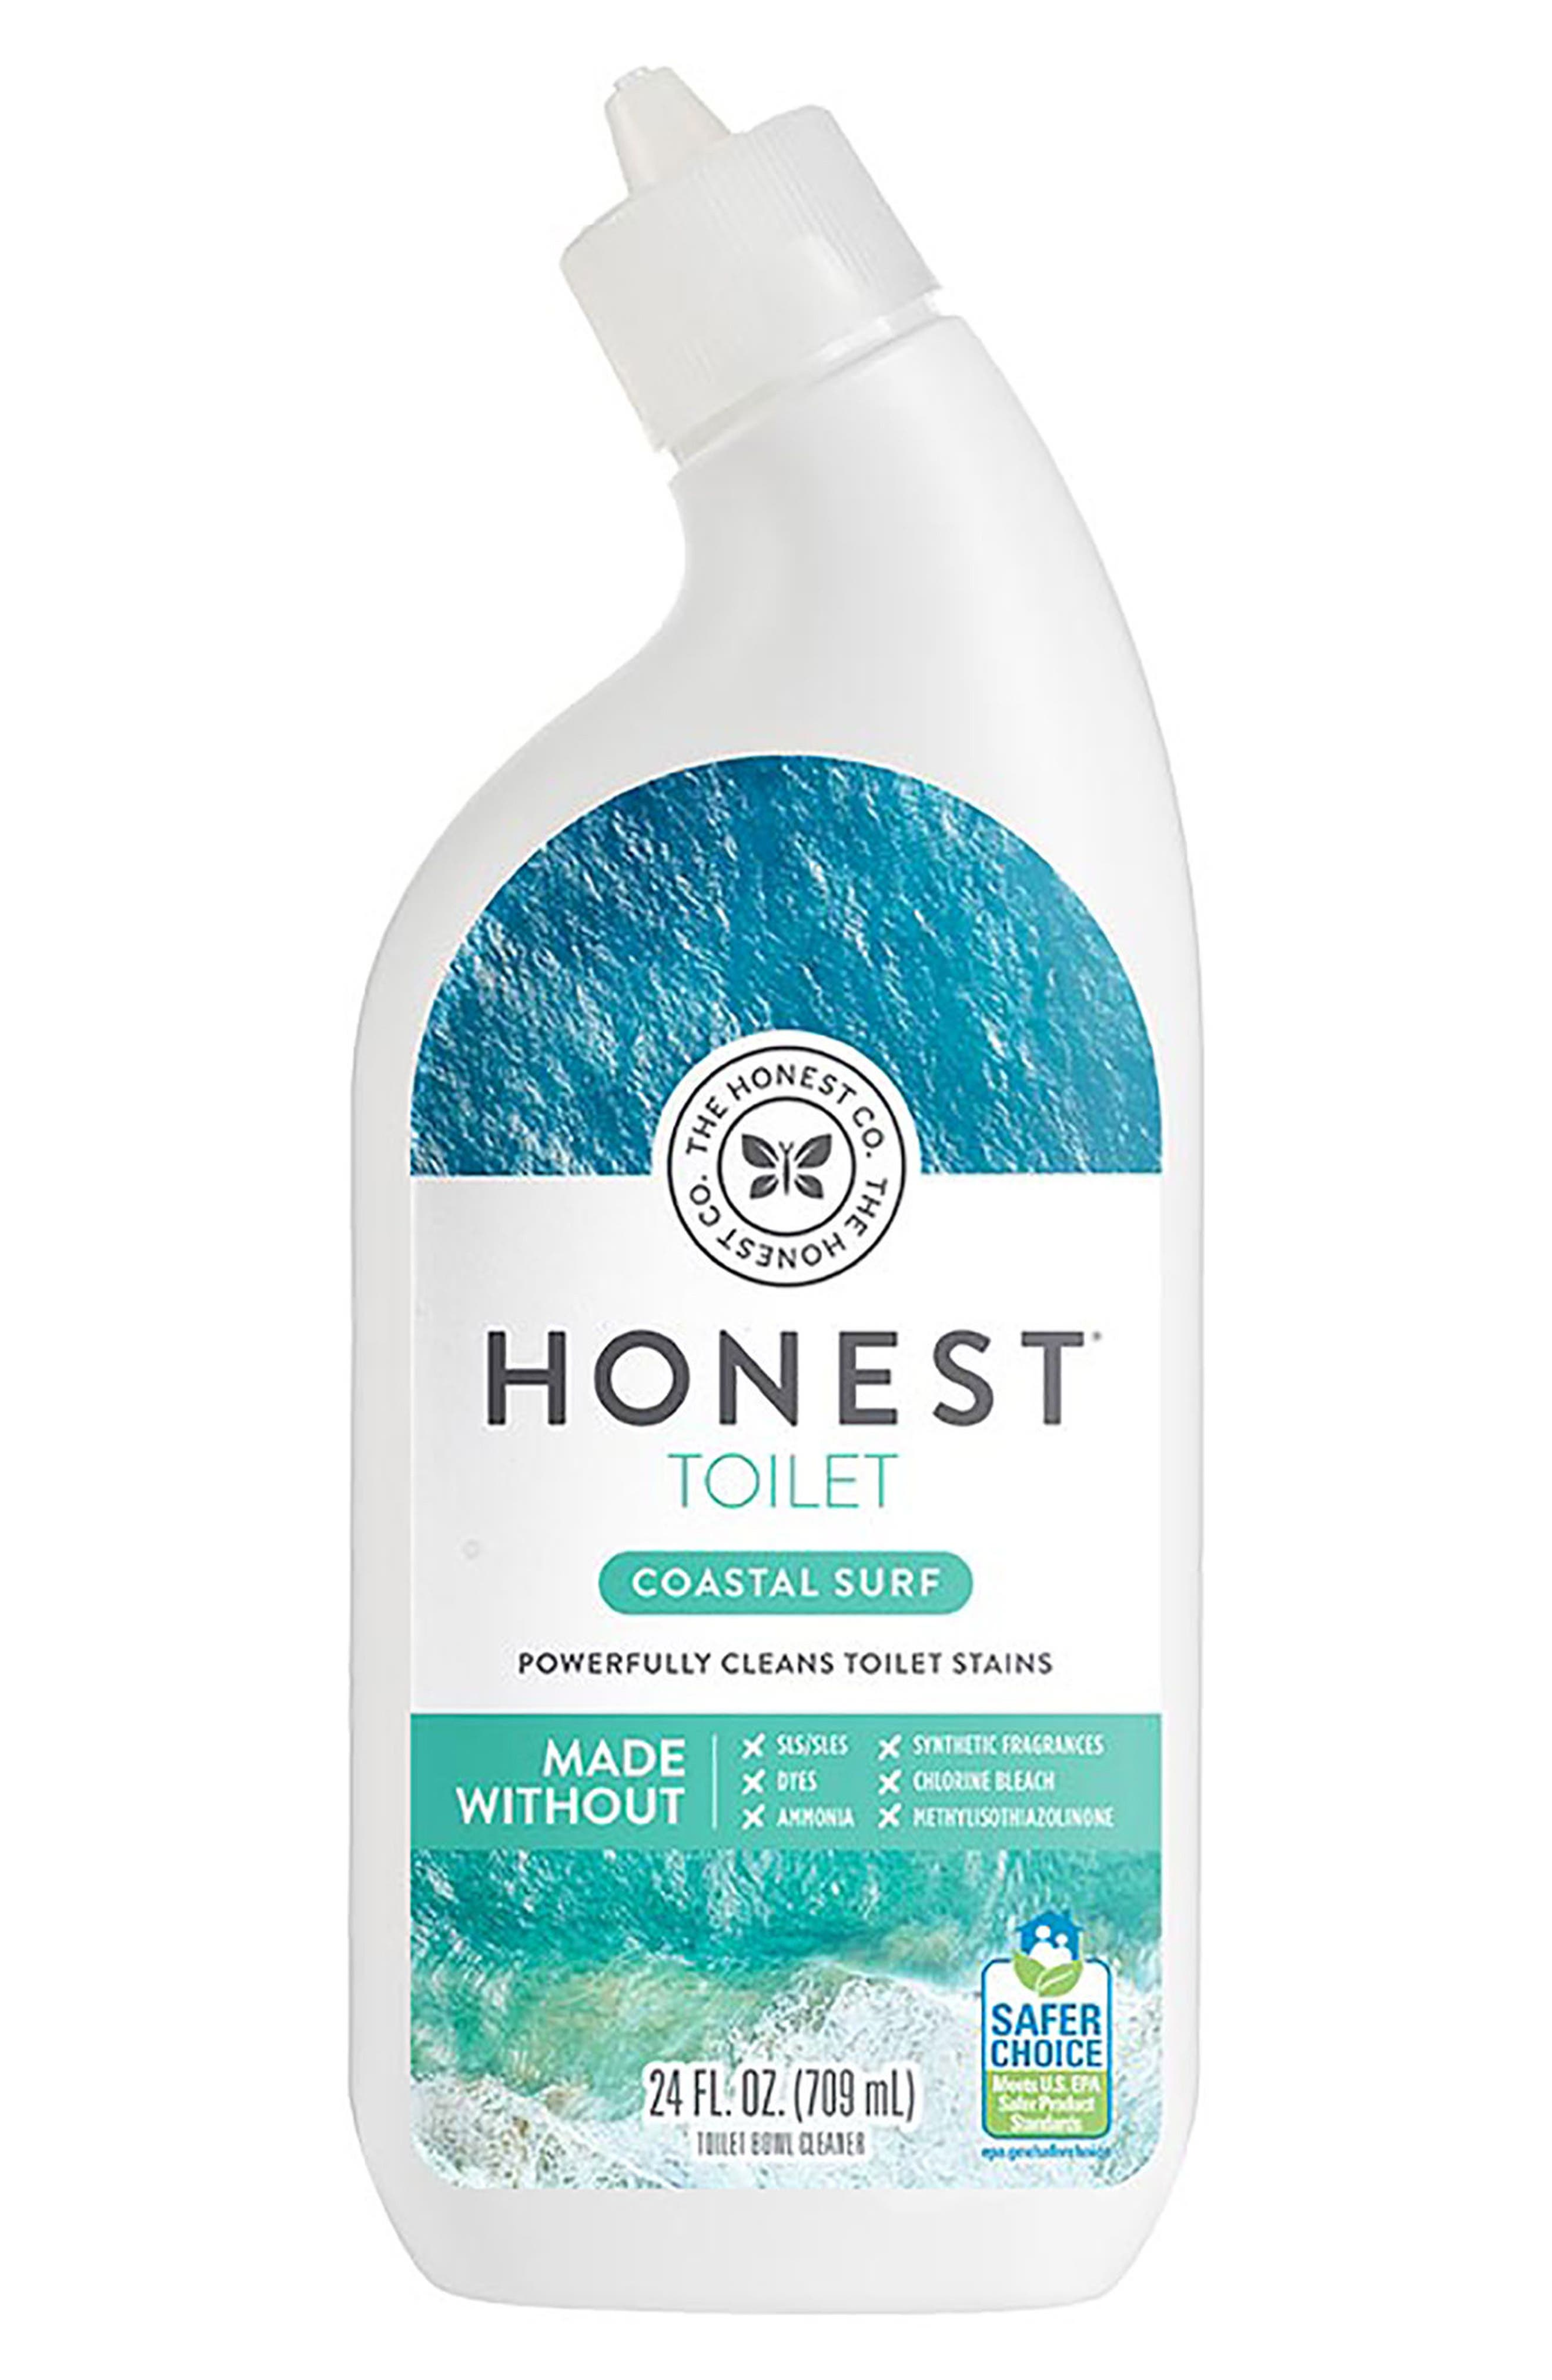 The Honest Company Coastal Surf Toilet Cleaner